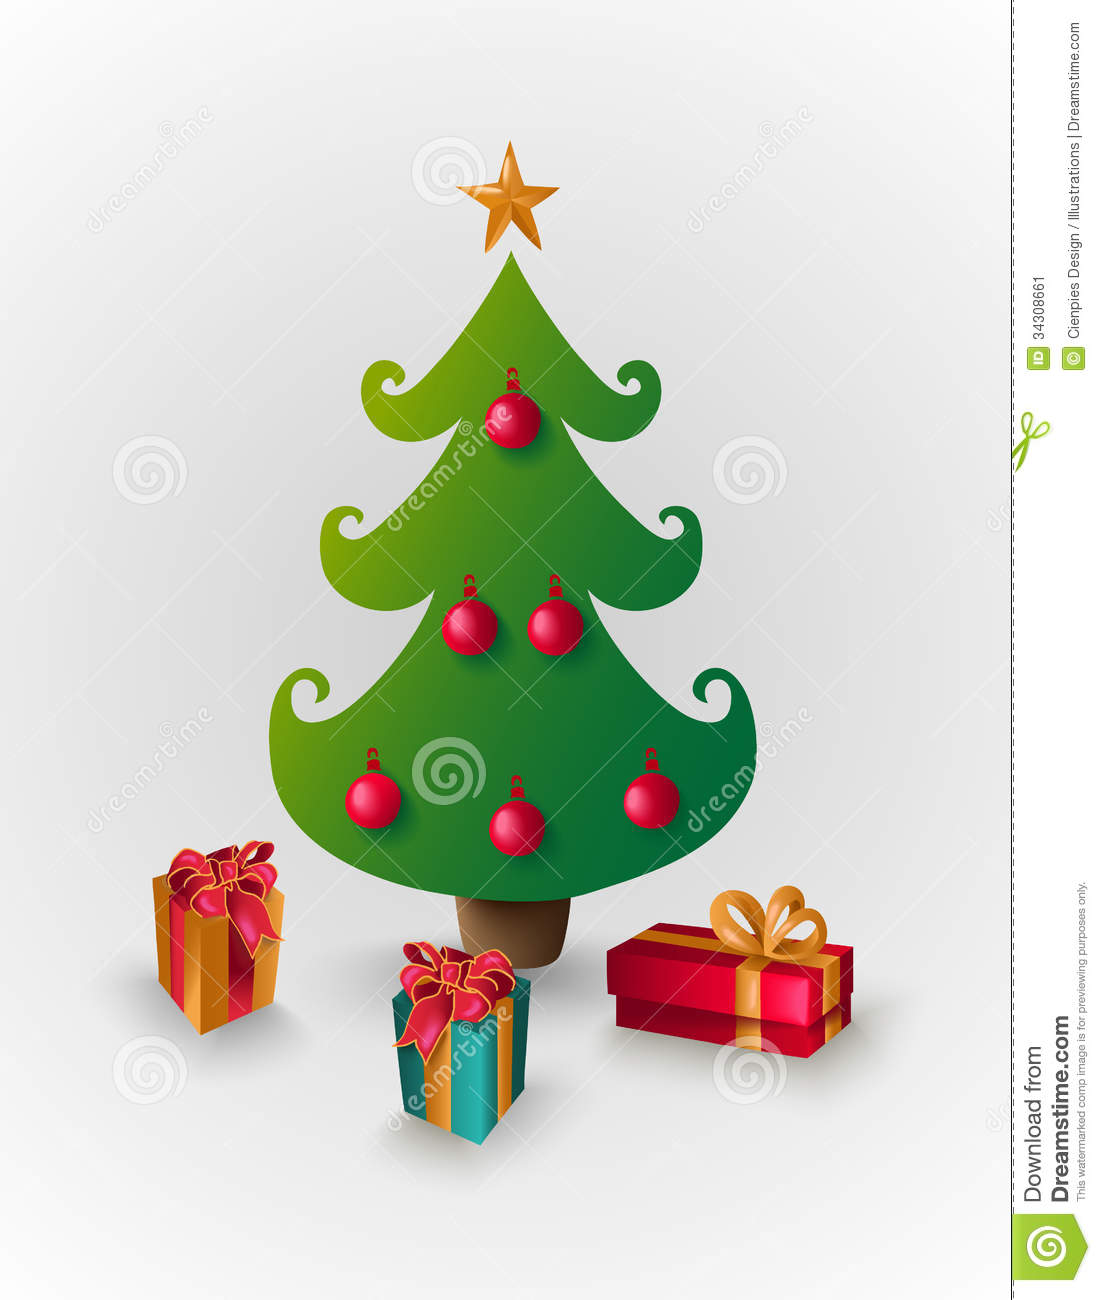 Merry Christmas Tree With Presents Eps10 File Stock